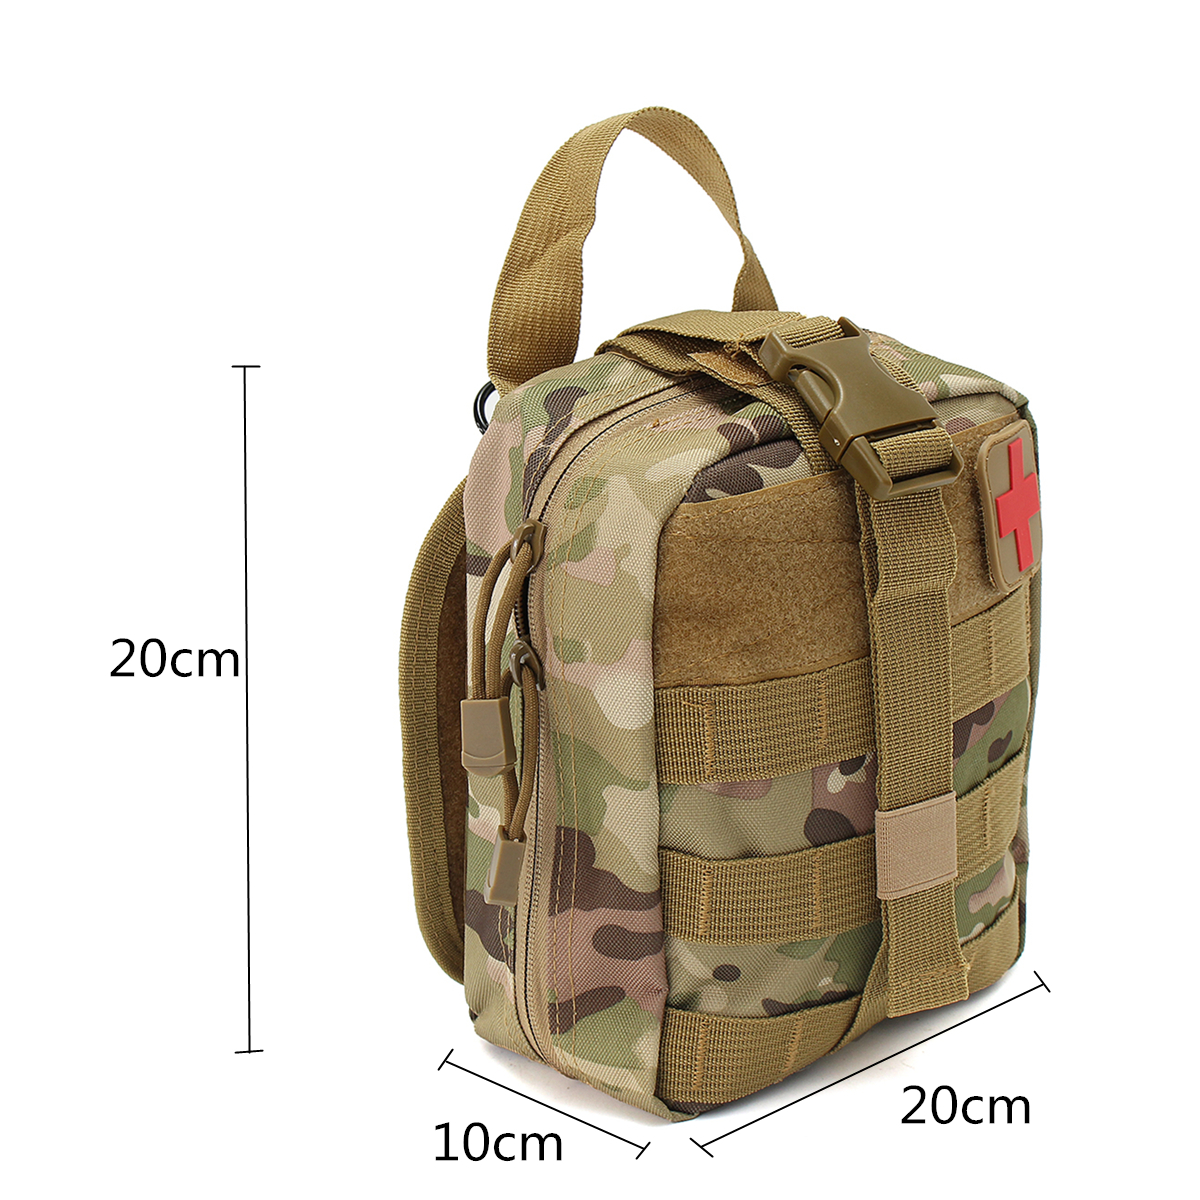 IPRee® EDC 900D Nylon Tactical Molle Bag Medical First Aid Utility Emergency Storage Pouch